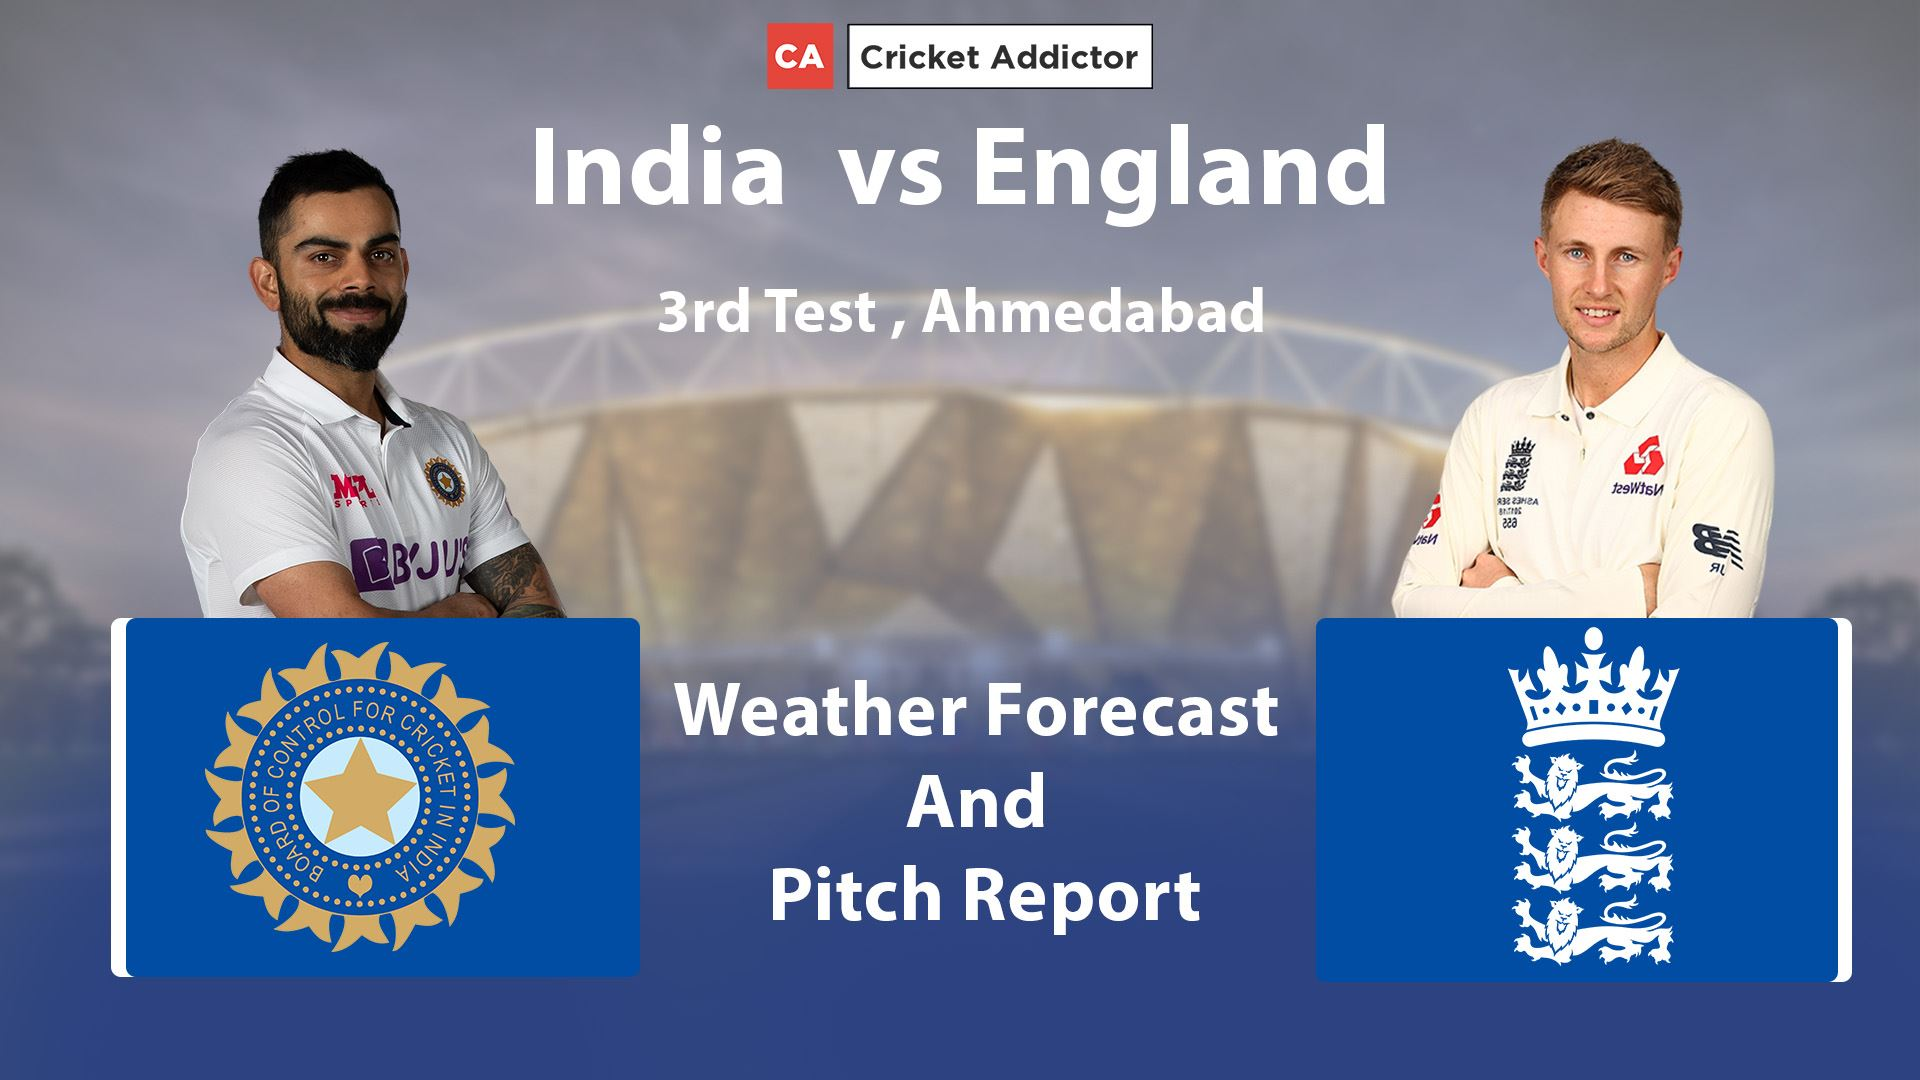 India vs England 2021, 3rd Test: Weather Forecast And Pitch Report